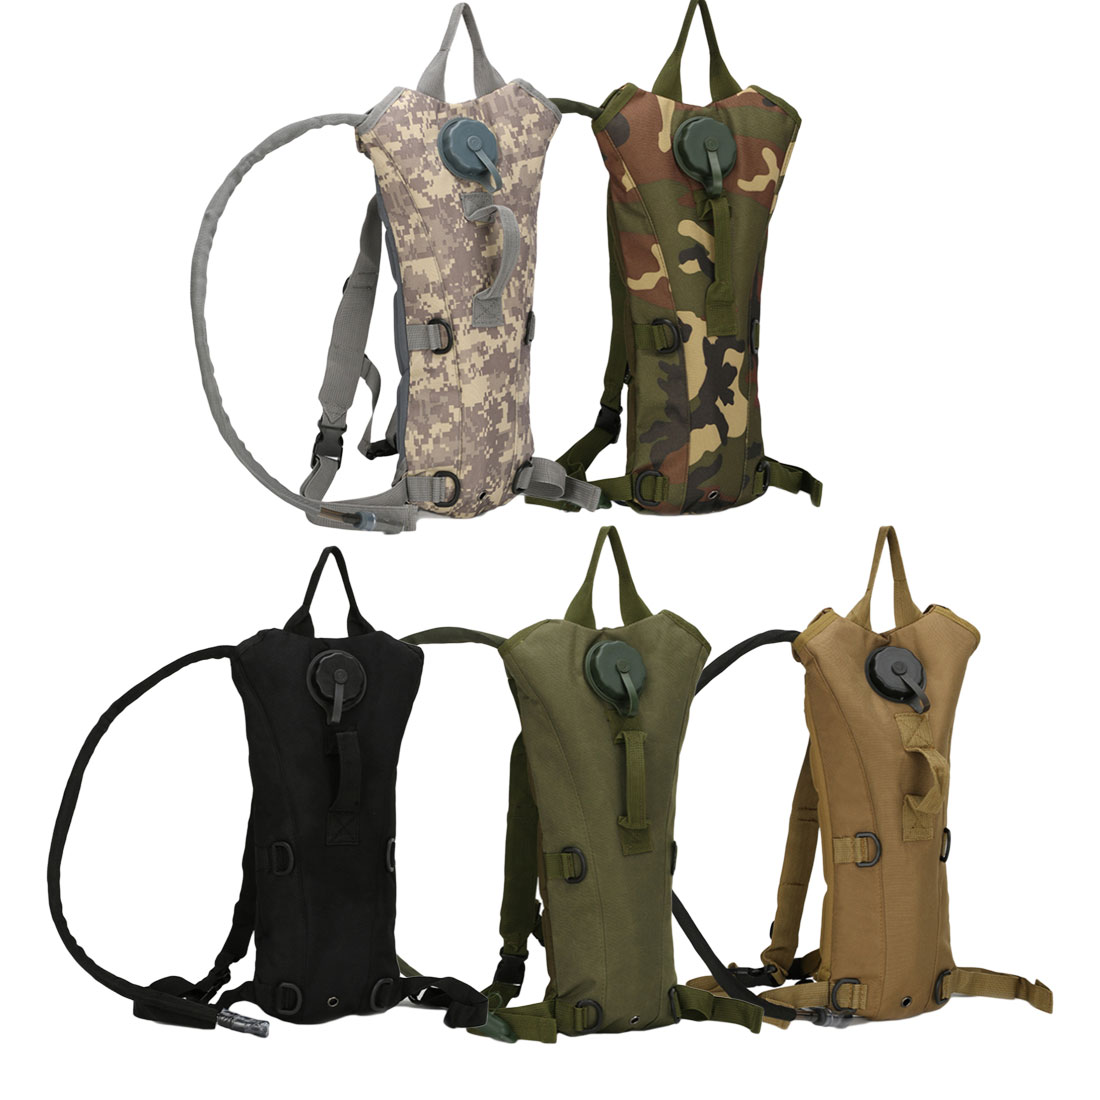 3L Outdoor Camping Hiking Nylon Camelback Water Bag Military Tactical Hydration Backpack Camel Water Bladder Storage For Cycling